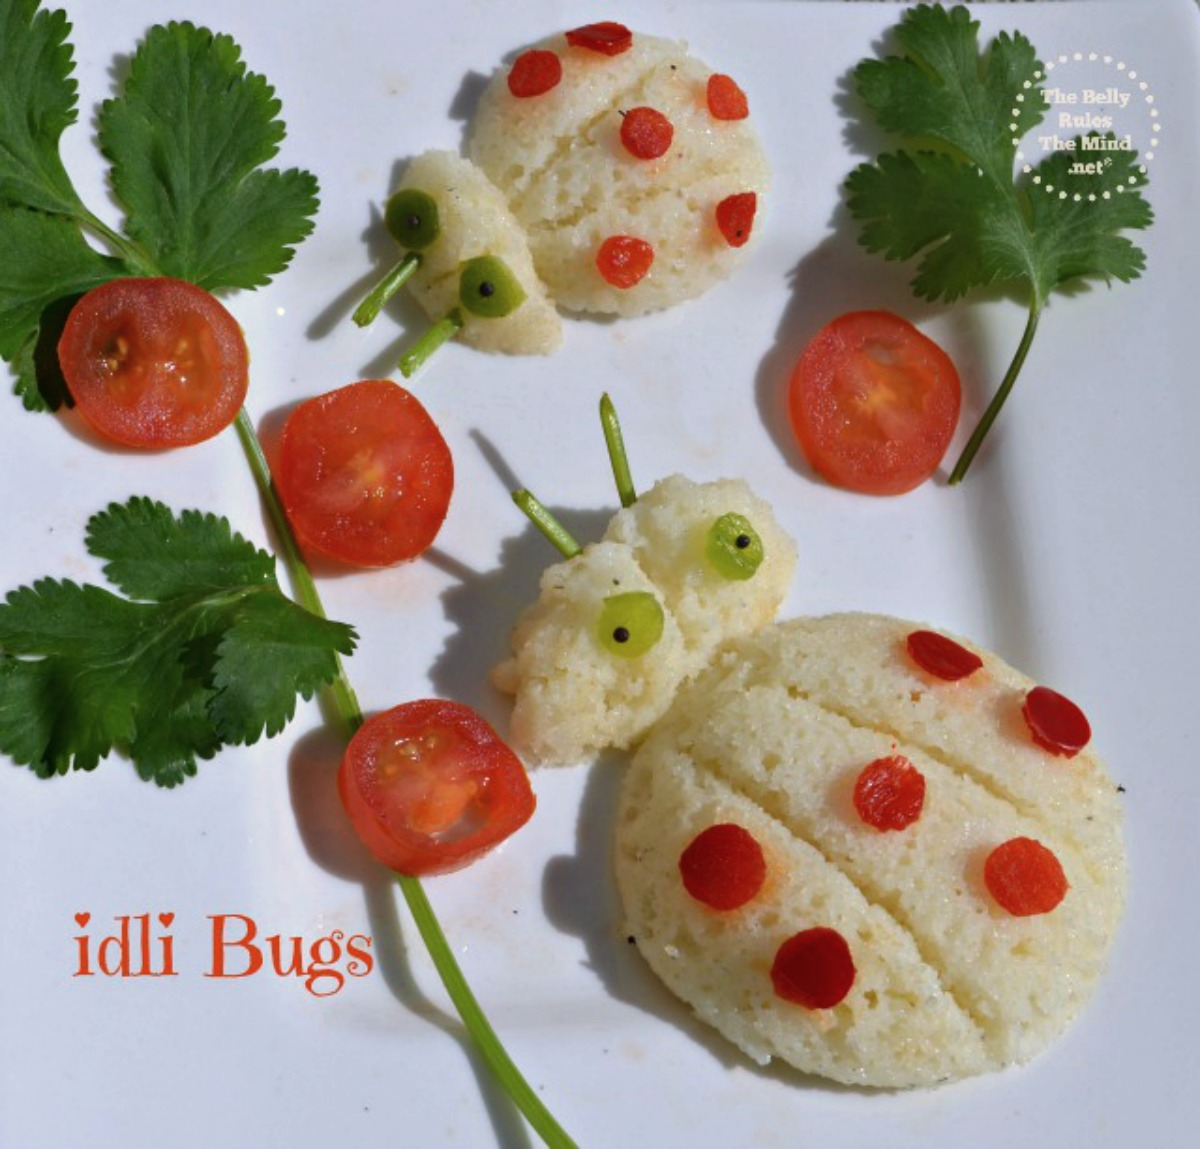 idli bugs food art